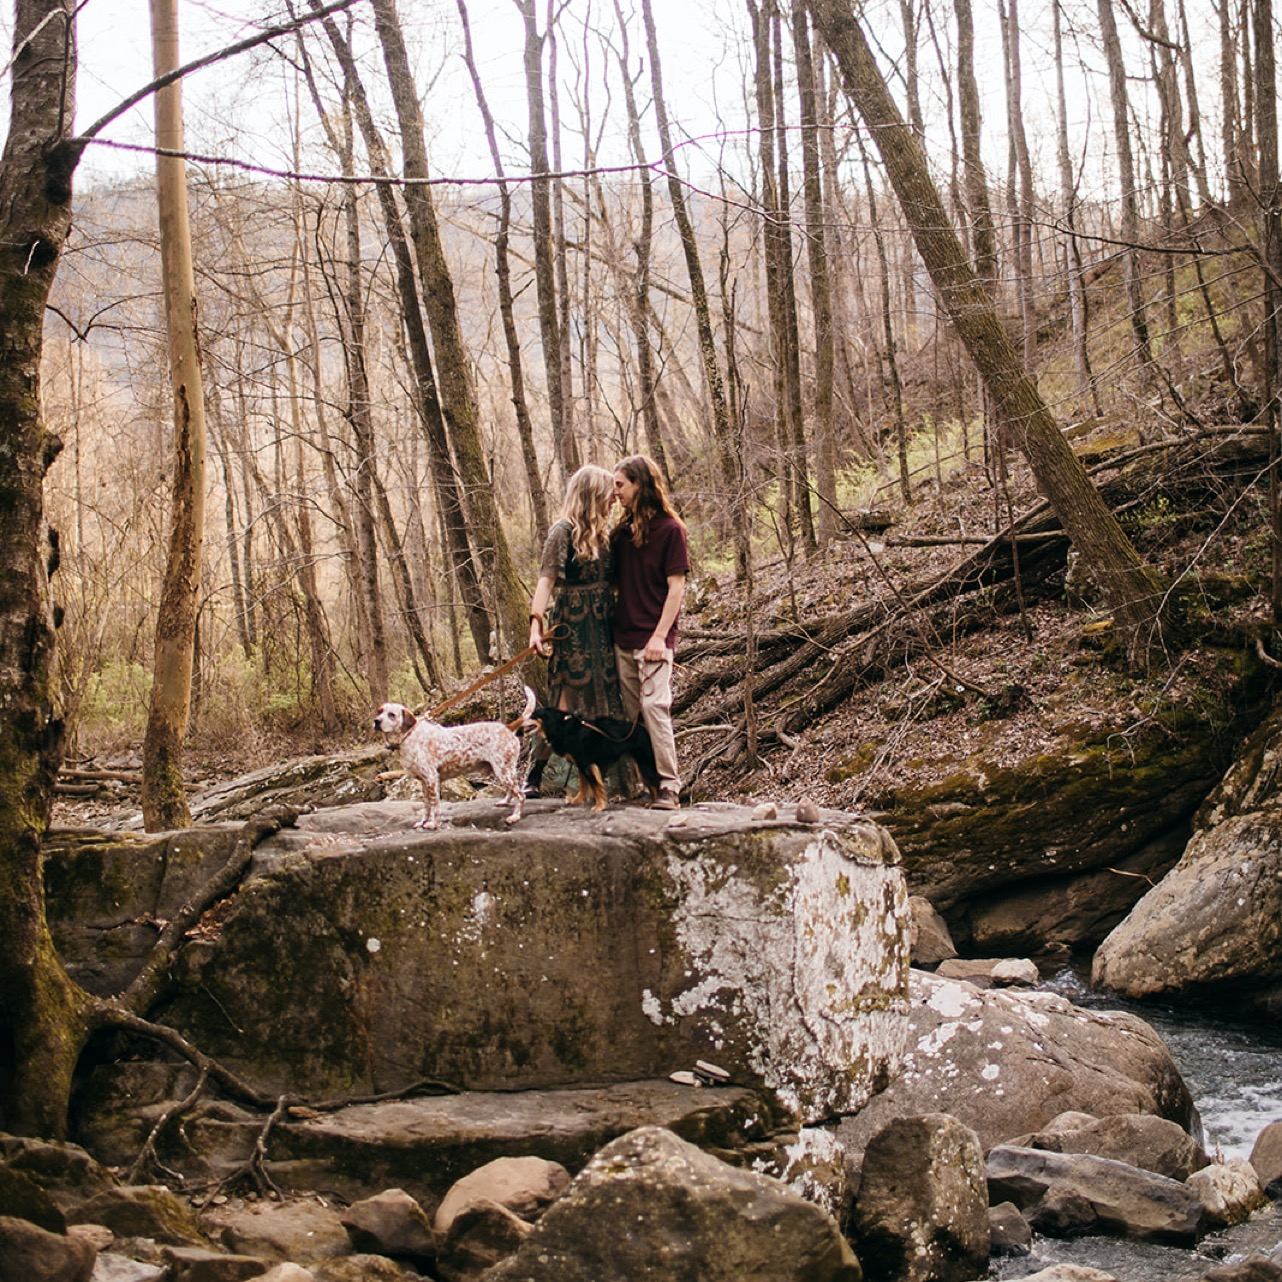 An engaged couple and their brown and white speckled dog poses atop a rock on a forest stream.